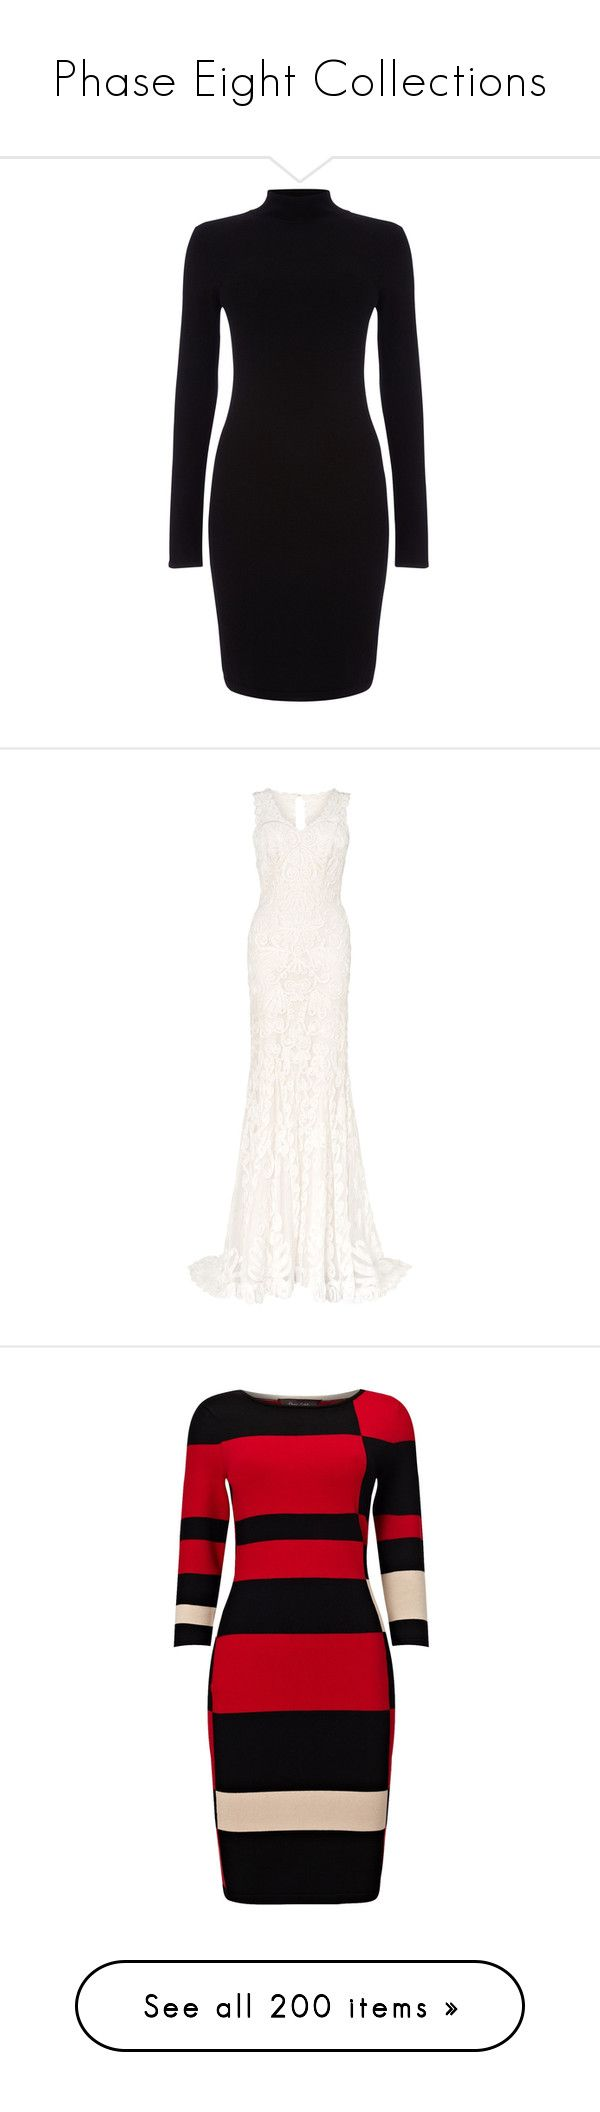 """Phase Eight Collections"" by tiffanyelinor ❤ liked on Polyvore featuring dresses, vestidos, mini dress, long sleeve turtleneck, black floor length dress, black turtleneck, black knee length dress, wedding dresses, wedding and gowns"